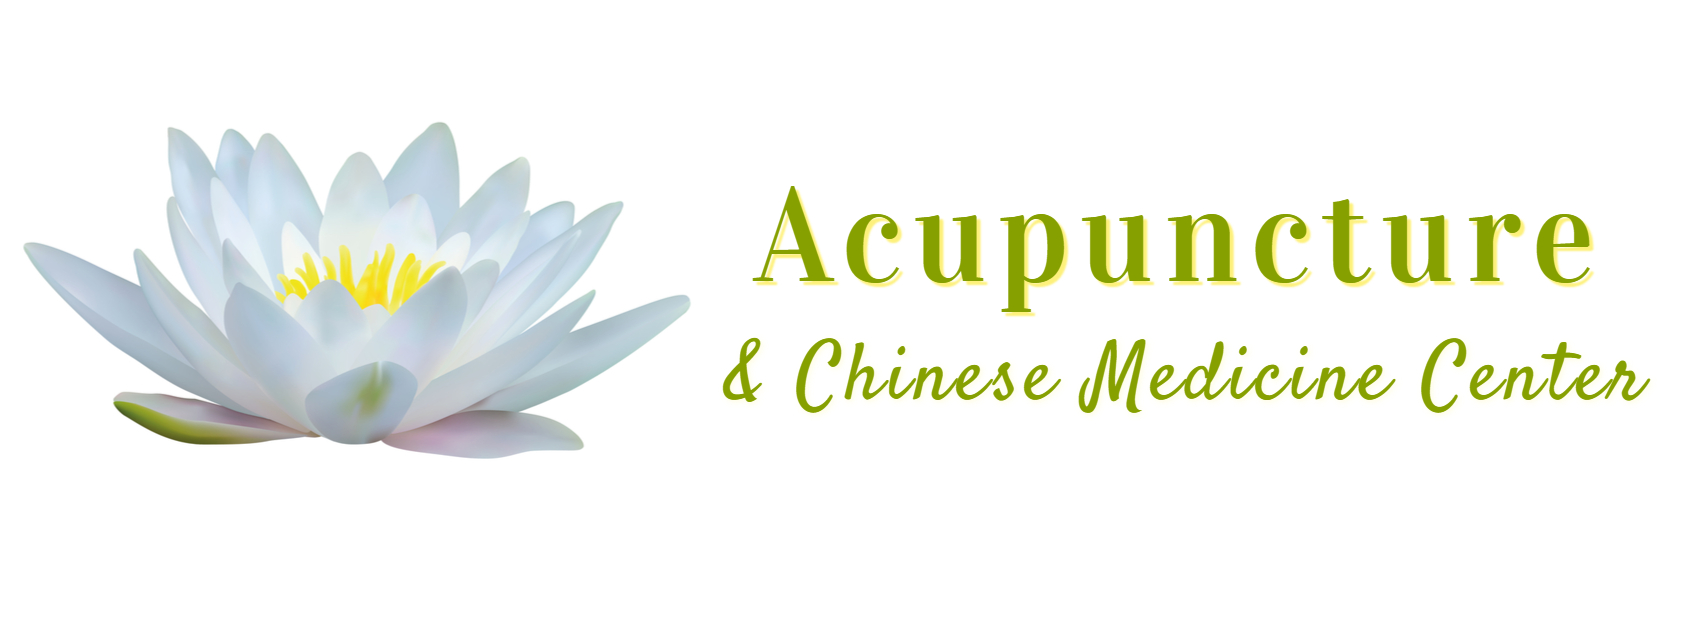 Minnesota Acupuncture & Chinese Medicine for Pain, Cosmetic, and Fertility Health